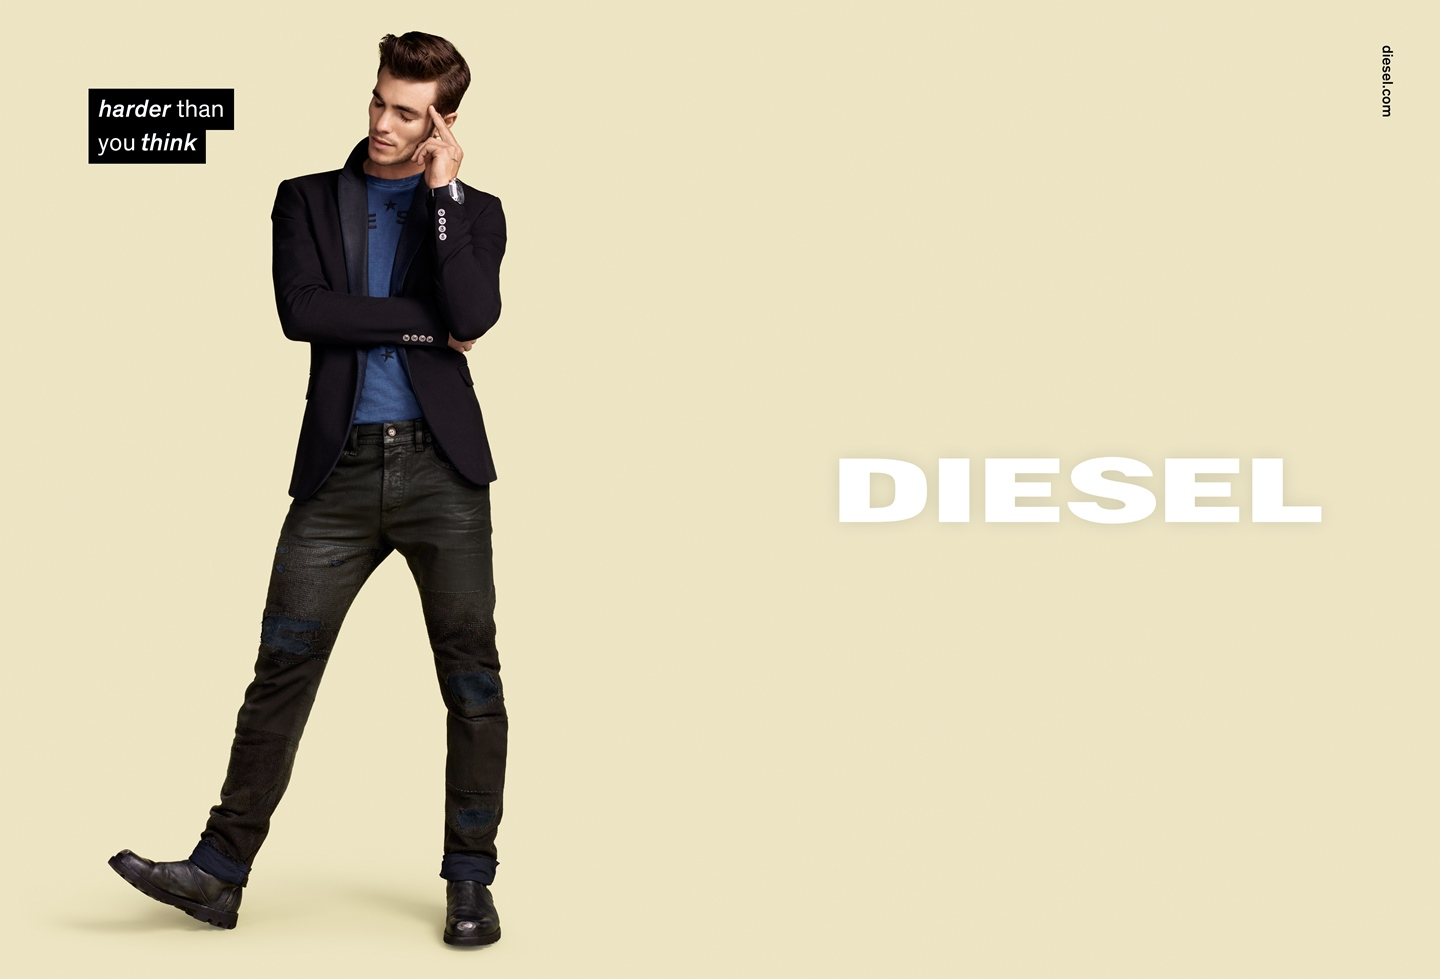 289209_623208_diesel_campaign_fw16_atl_denim_single_male_dps_highres